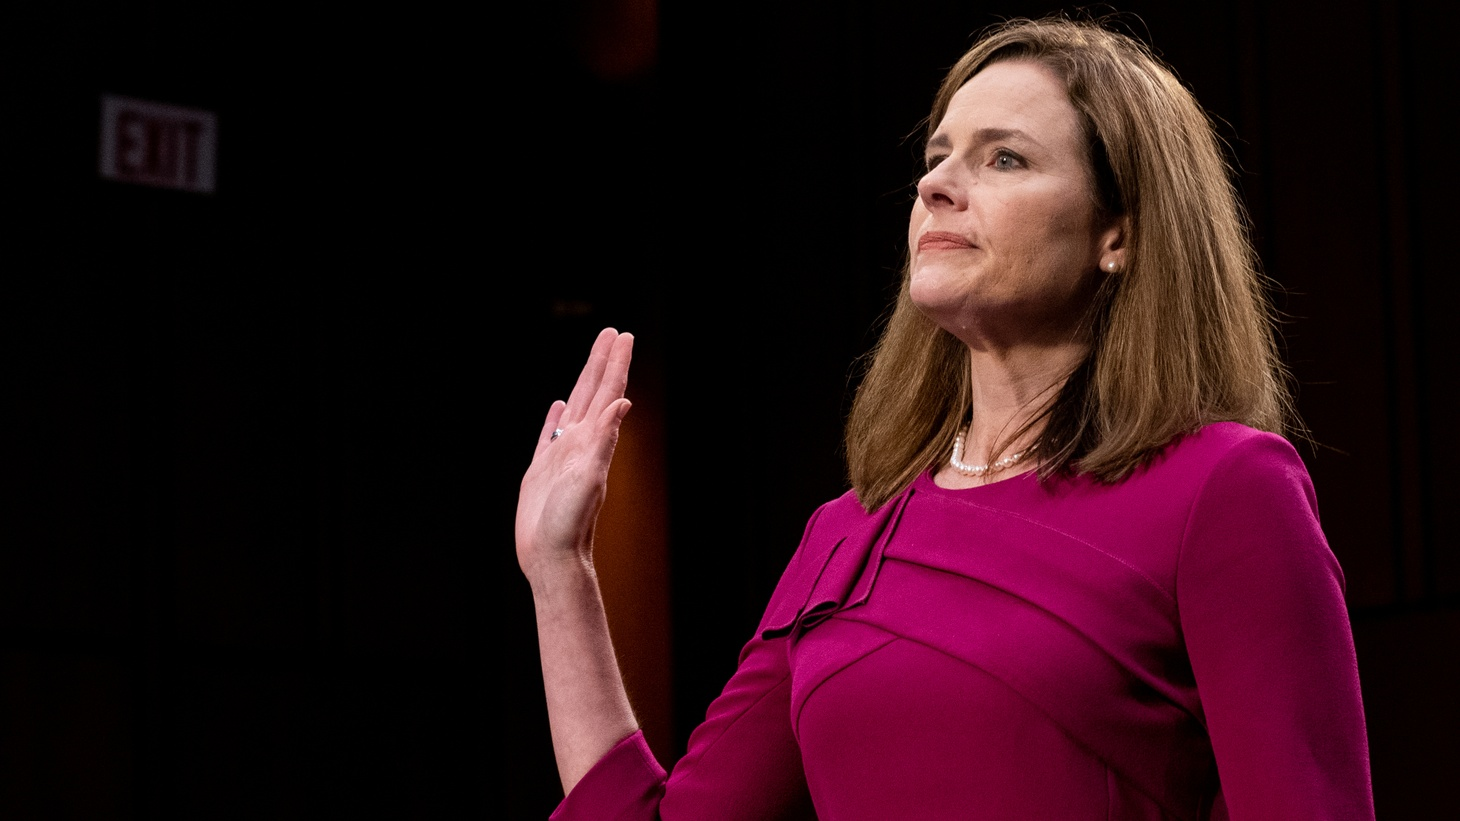 U.S. Supreme Court nominee Amy Coney Barrett is sworn in during her confirmation hearing before the Senate Judiciary Committee on Capitol Hill in Washington , D.C., U.S., October 12, 2020.